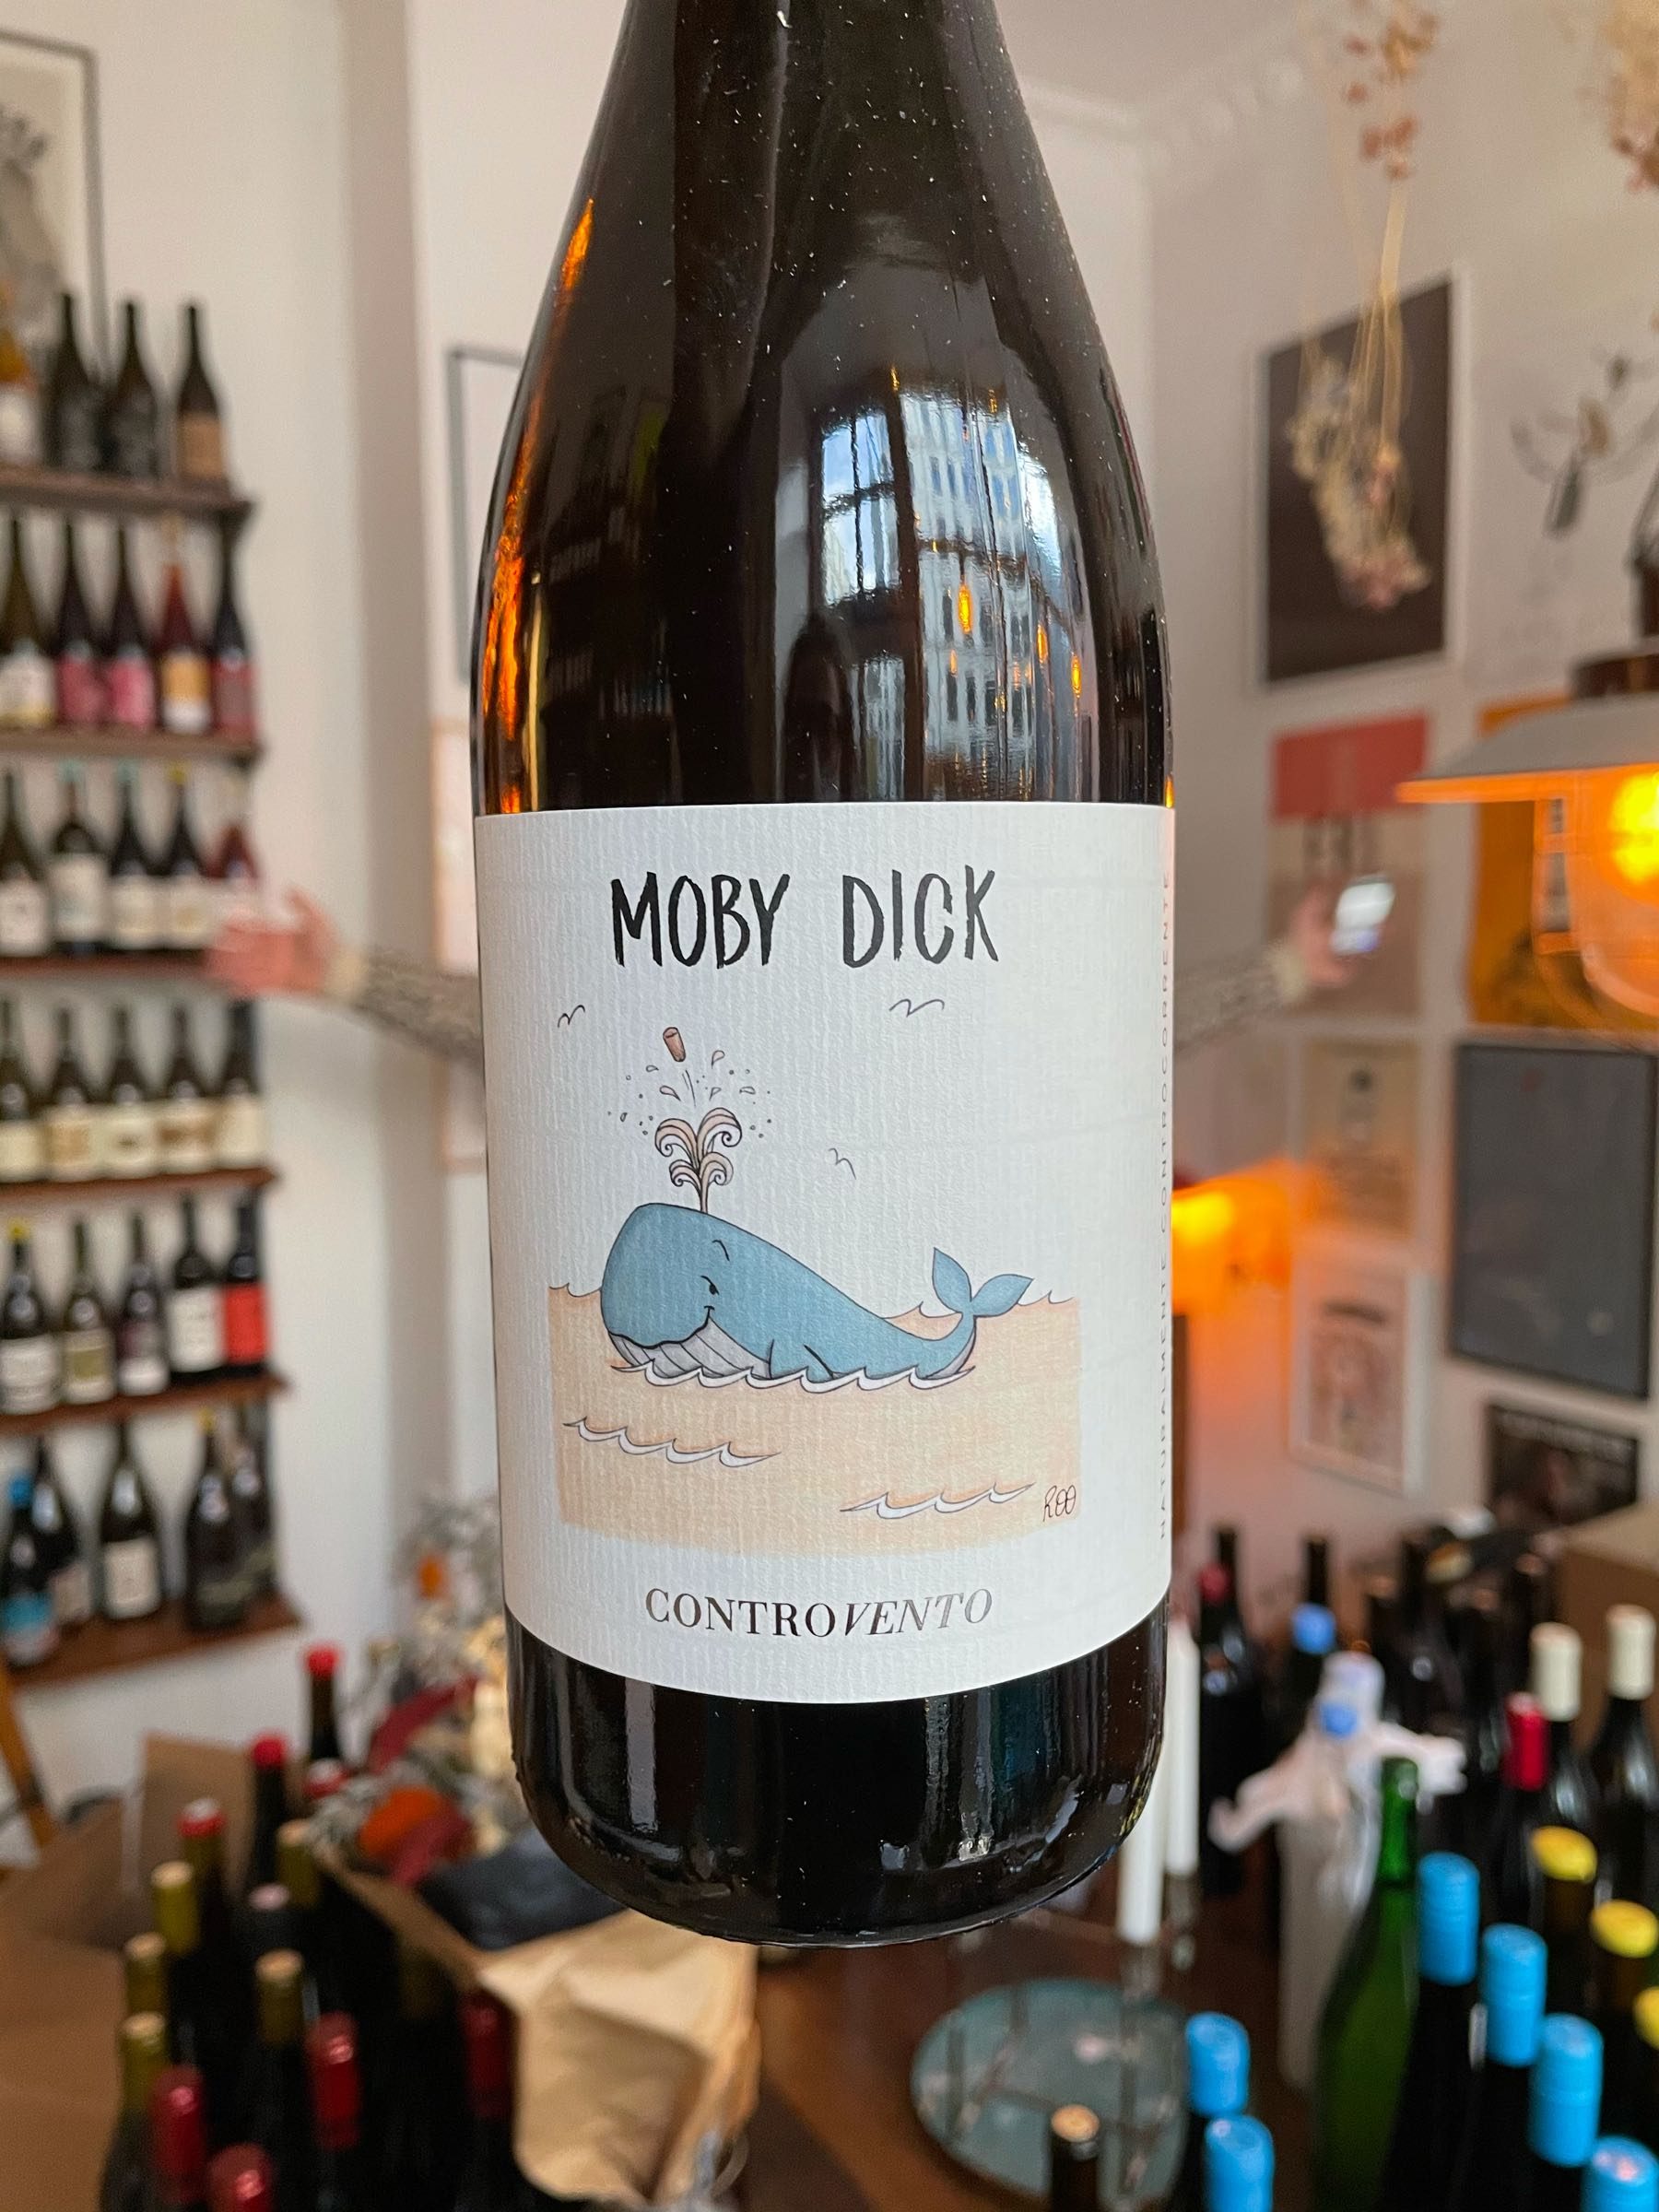 Moby Dick - Controvento